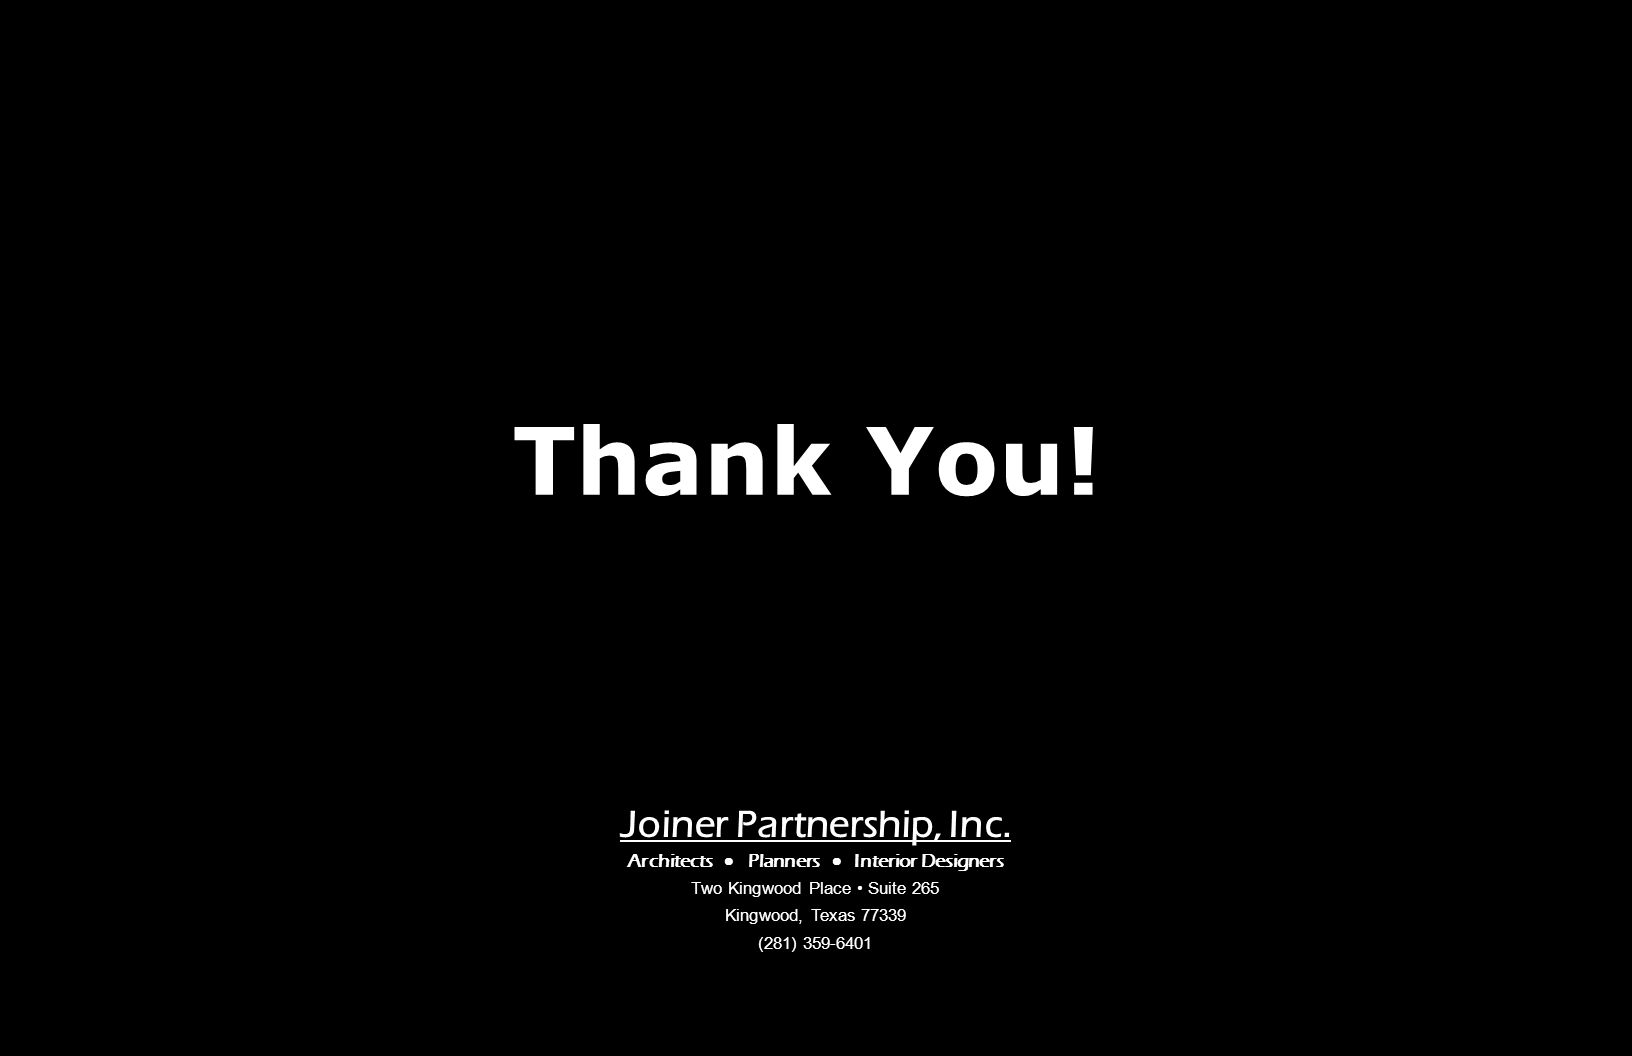 Joiner Partnership, Inc. Architects Planners Interior Designers Two Kingwood Place Suite 265 Kingwood, Texas 77339 (281) 359-6401 Thank You!